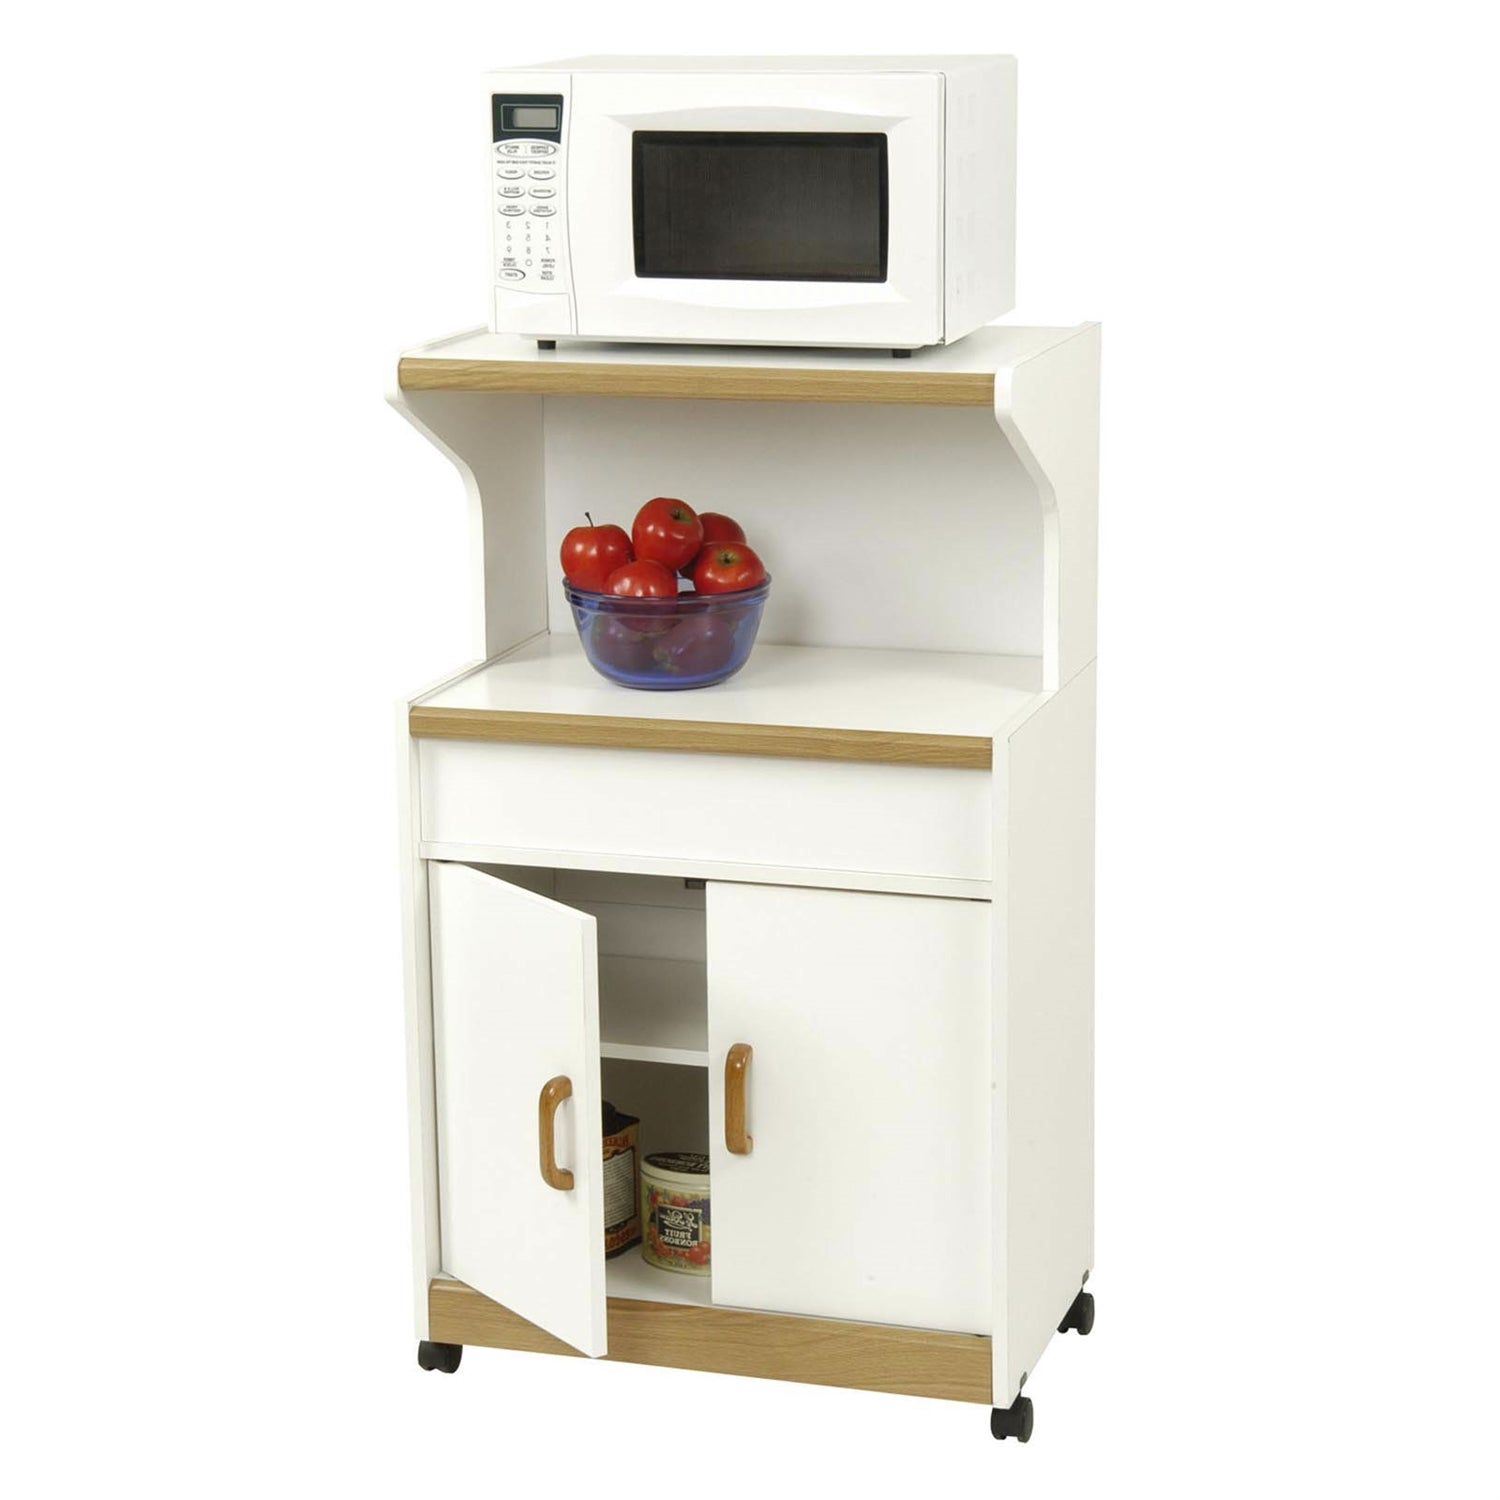 Kitchen Utility Microwave Cart in White & Medium Oak with Lower Storage